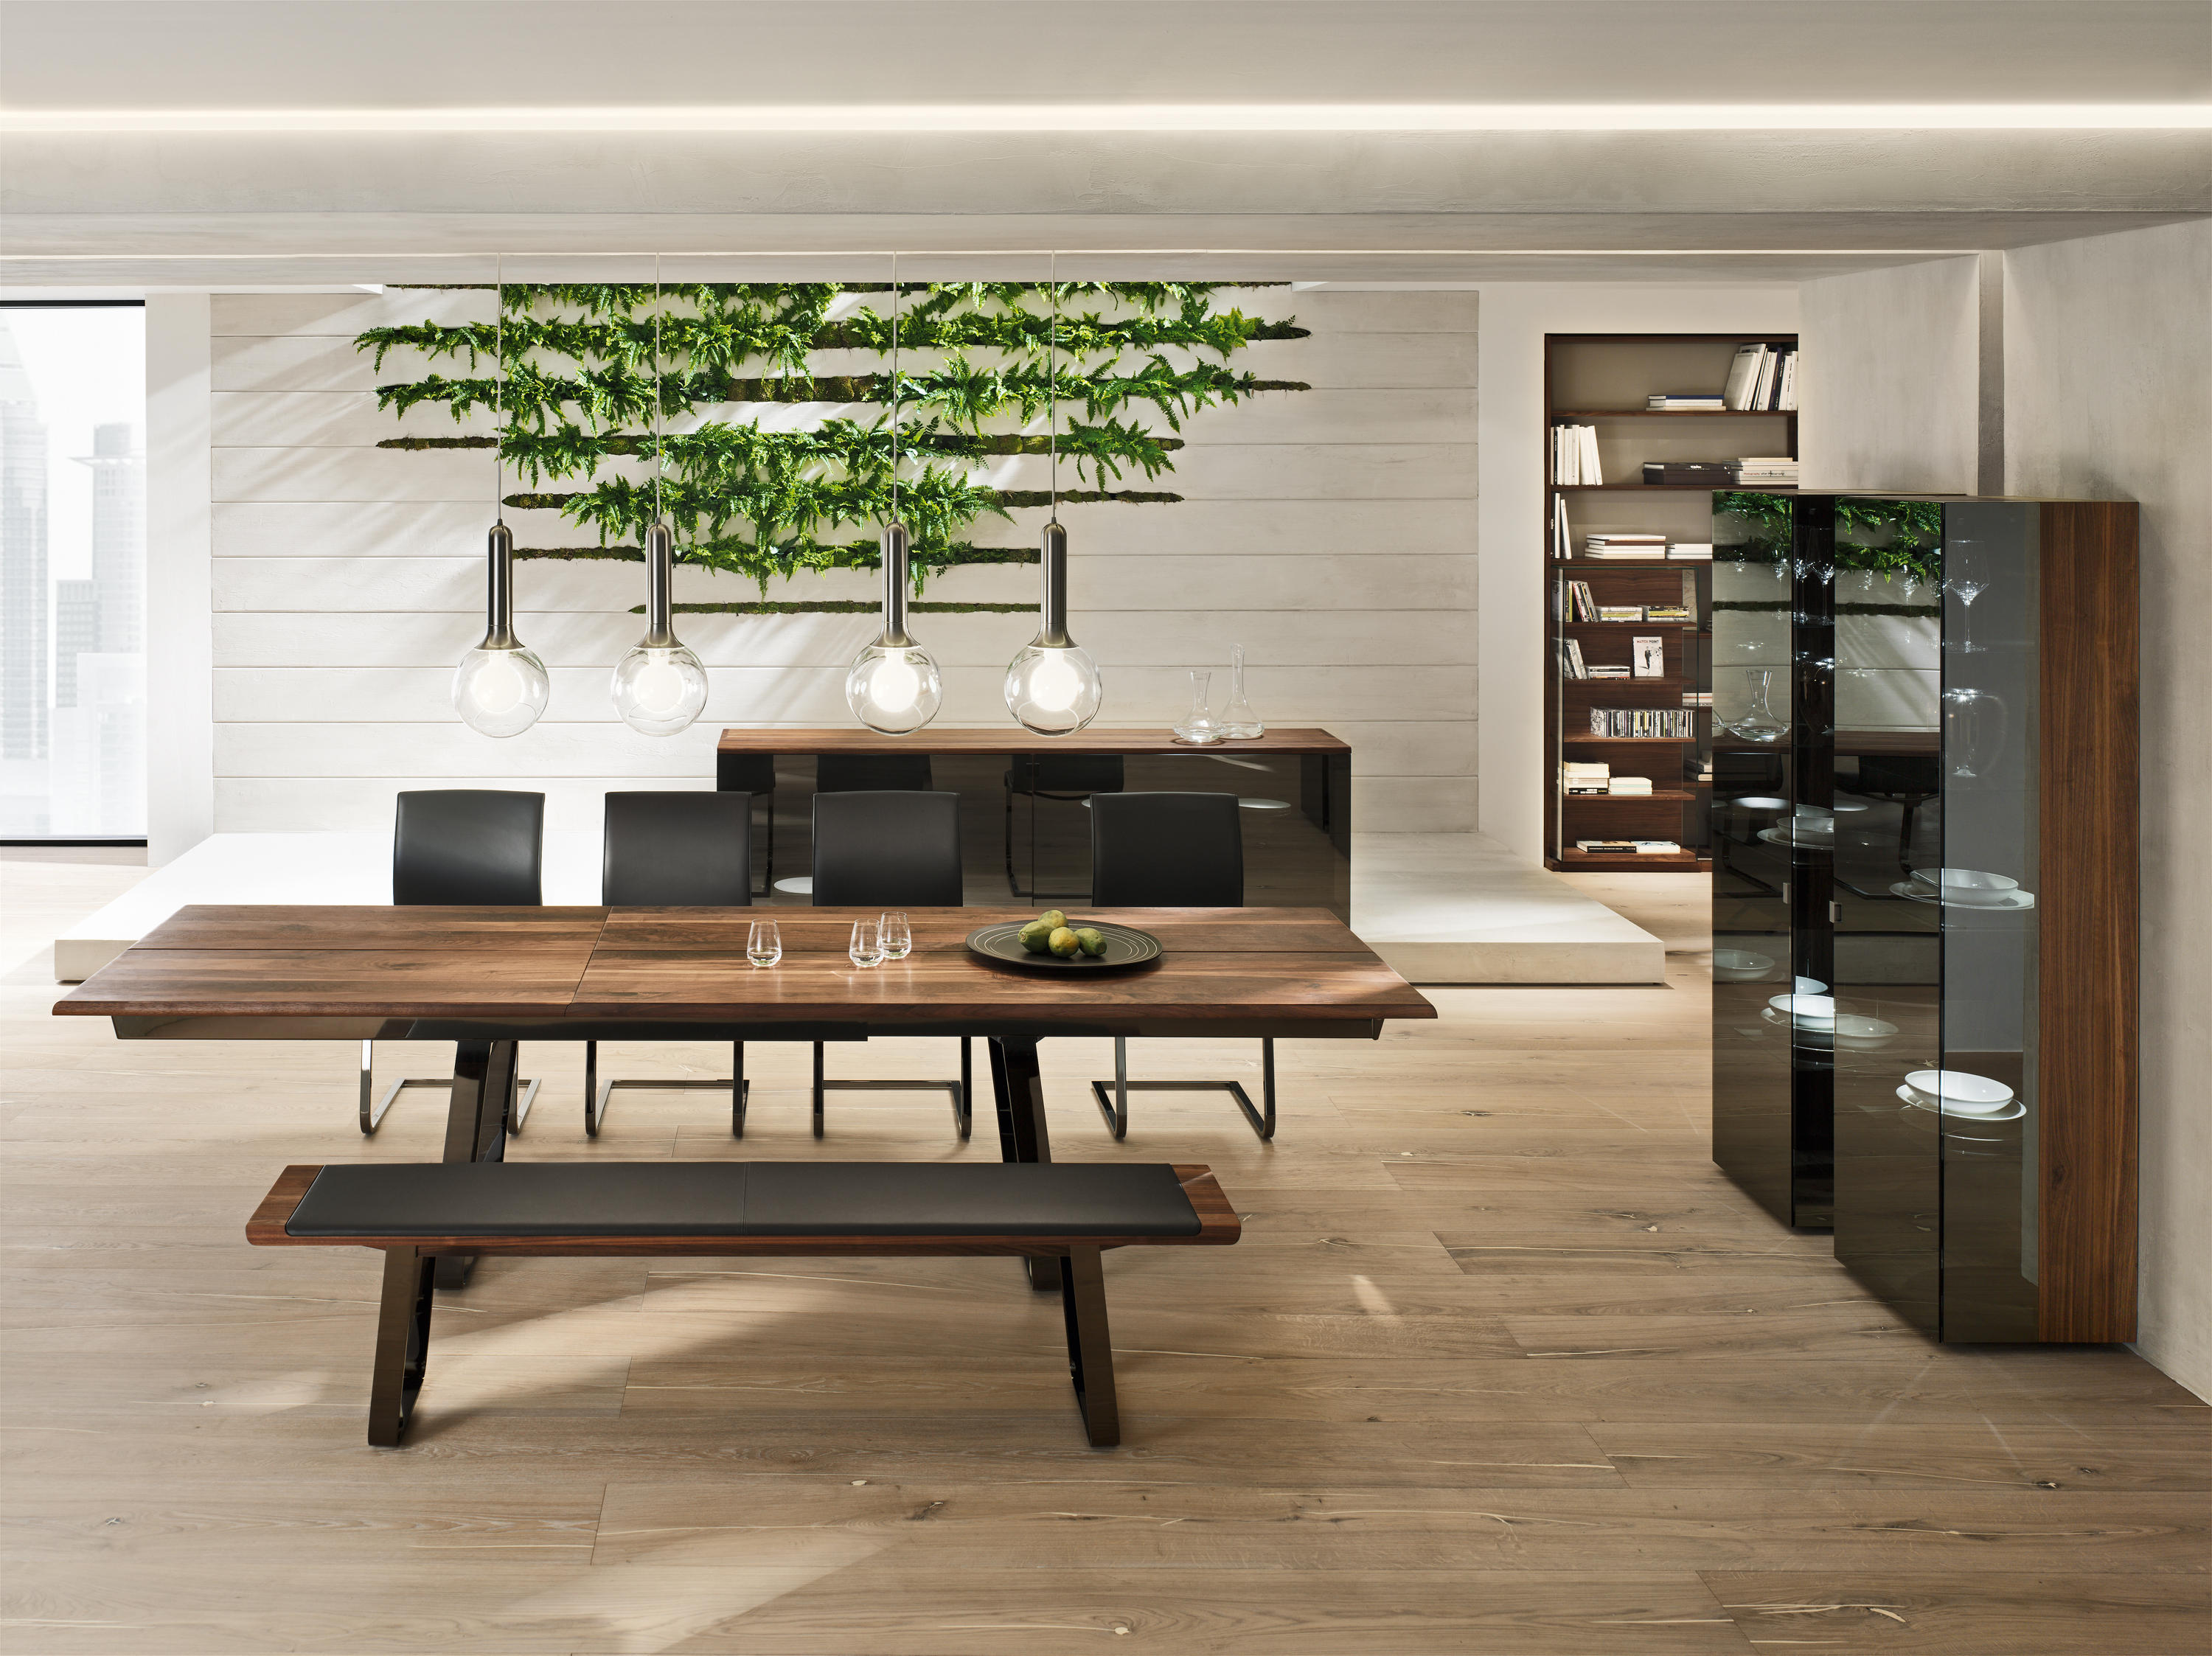 nox bench benches from team 7 architonic. Black Bedroom Furniture Sets. Home Design Ideas